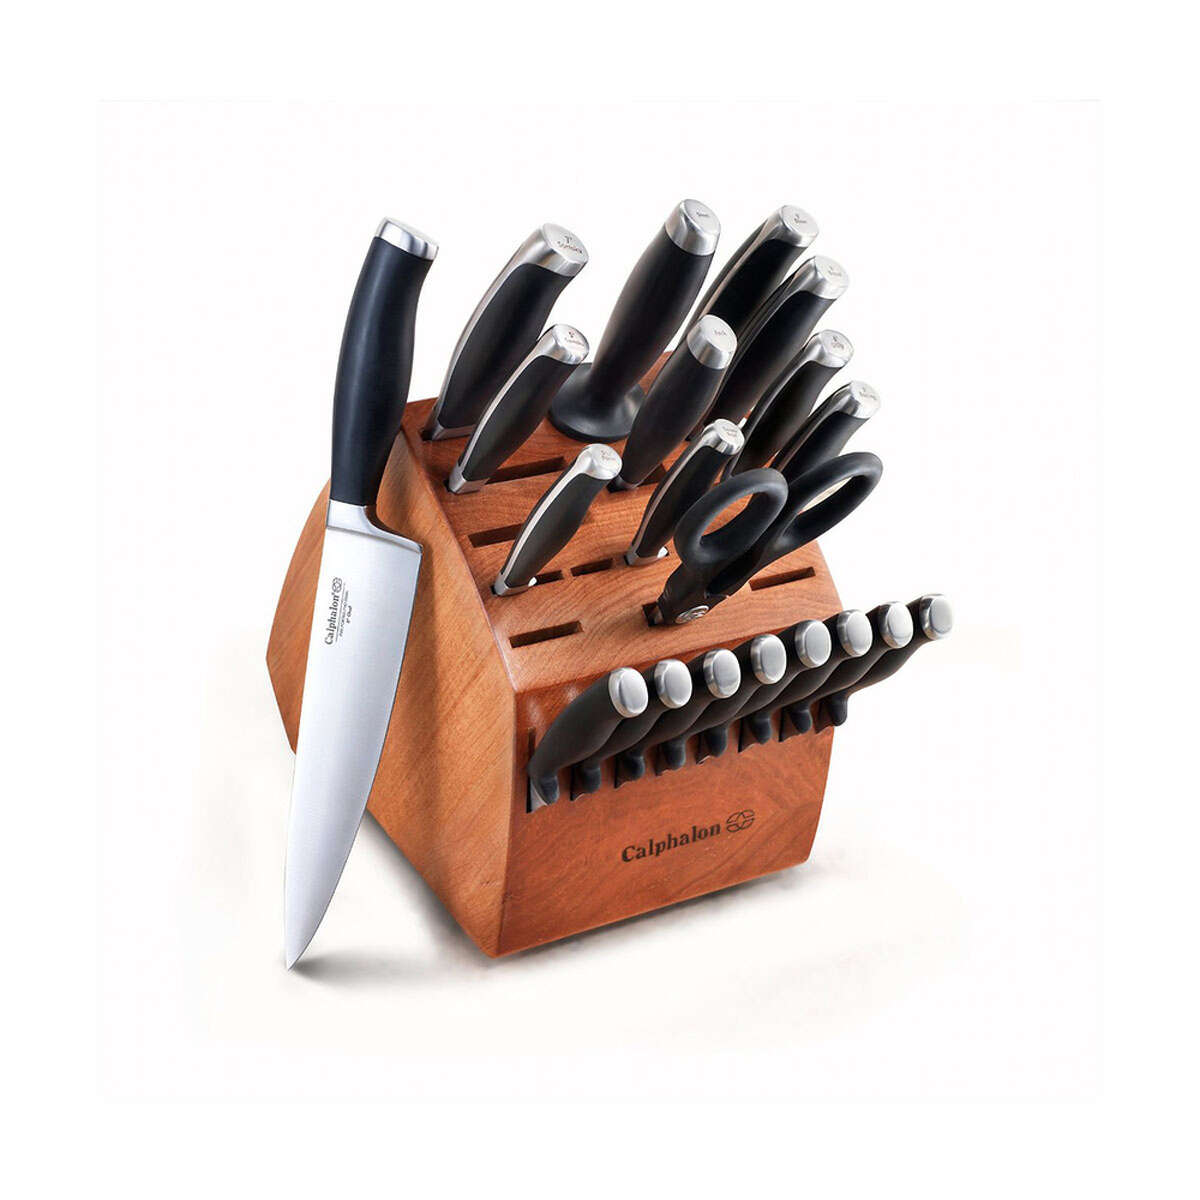 Kitchenware maker Calphalon is recalling about 2 million knives over fears that blades could break, resulting in injury.